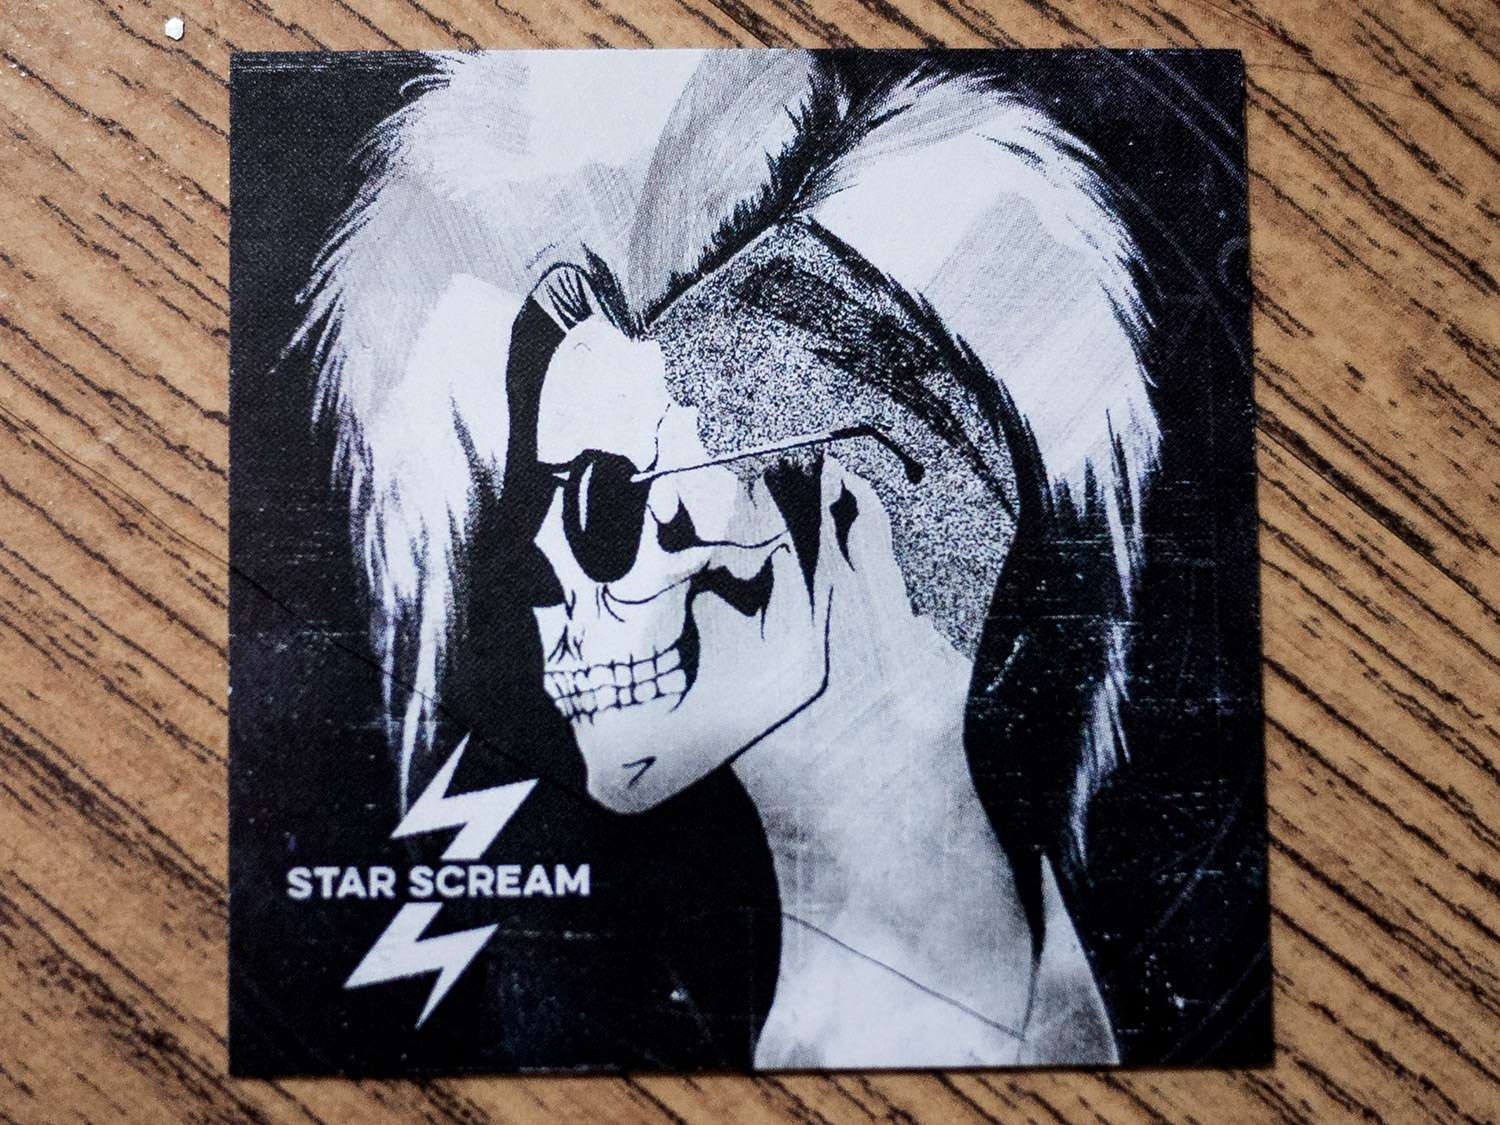 Star Scream Business Cards - Flashbang Studio